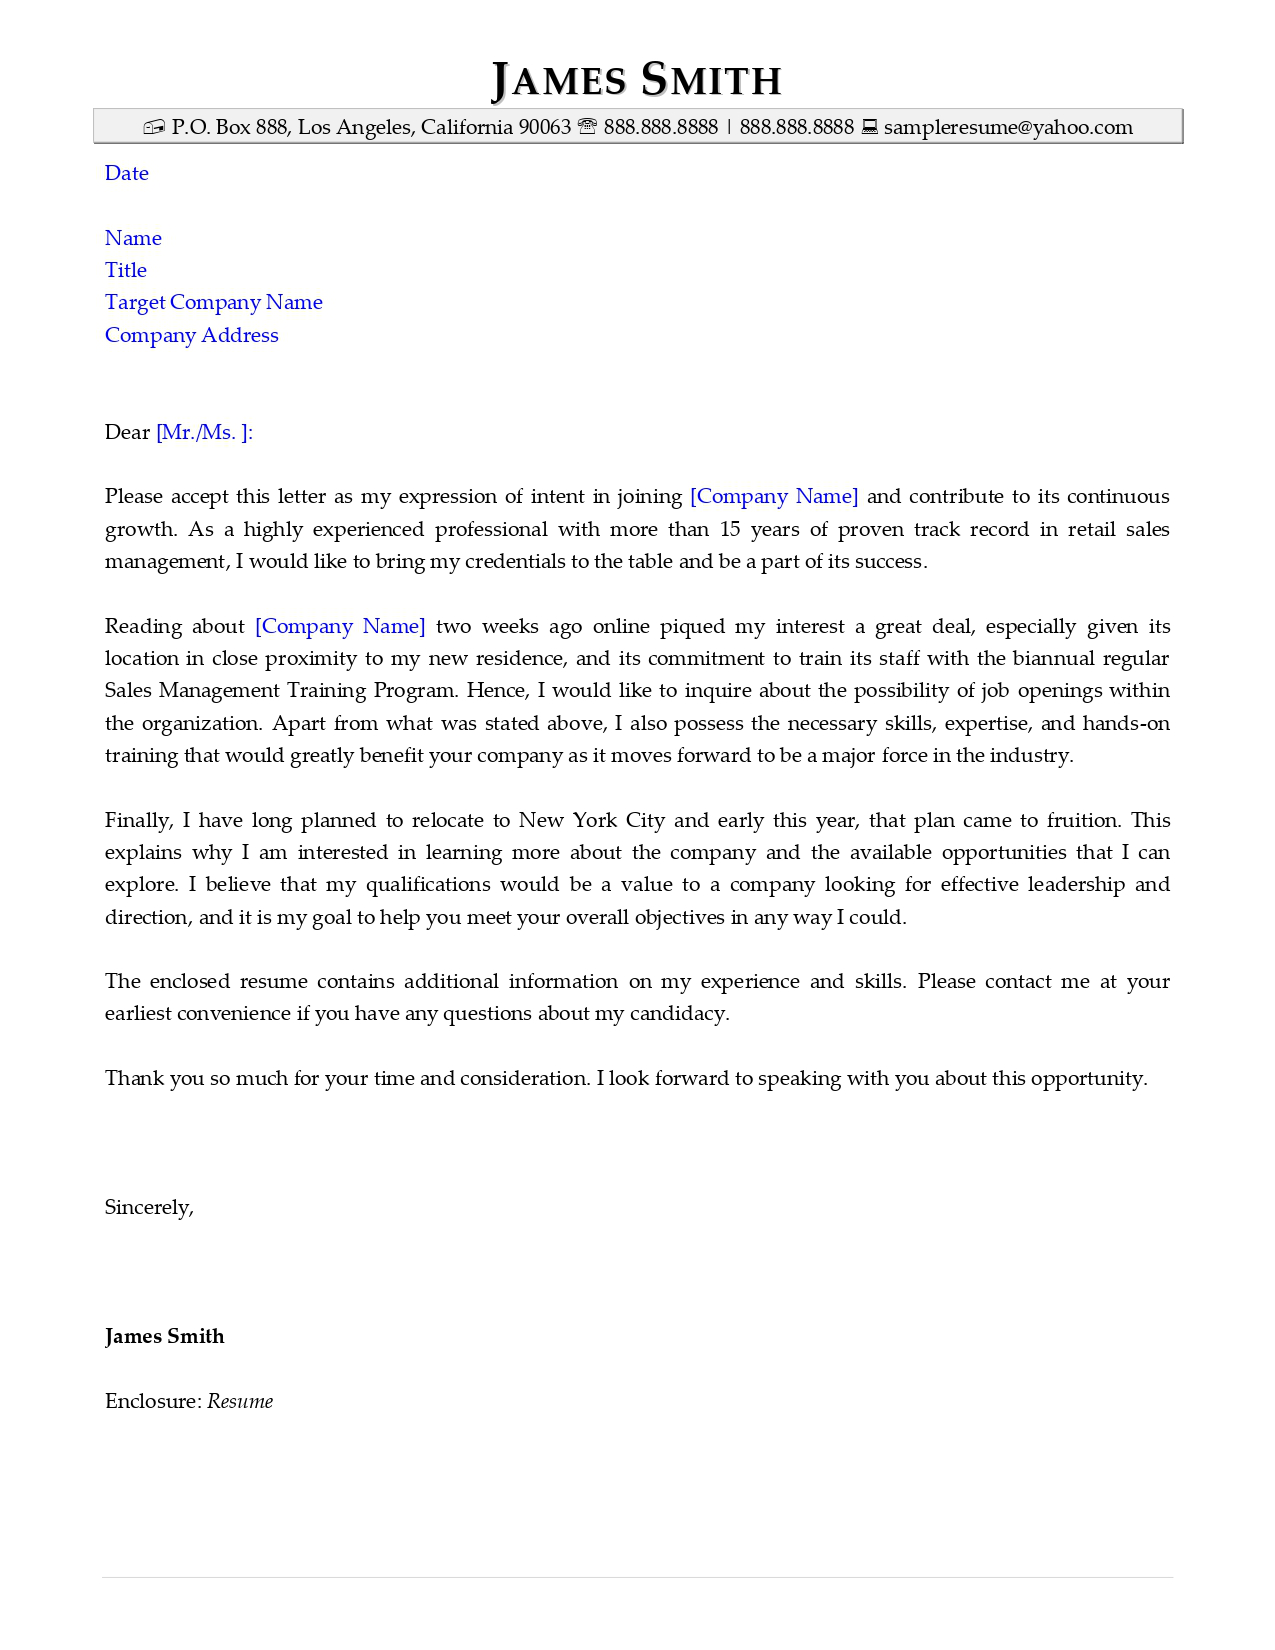 Resume Cover Letter Writing To Ace Your Job Search